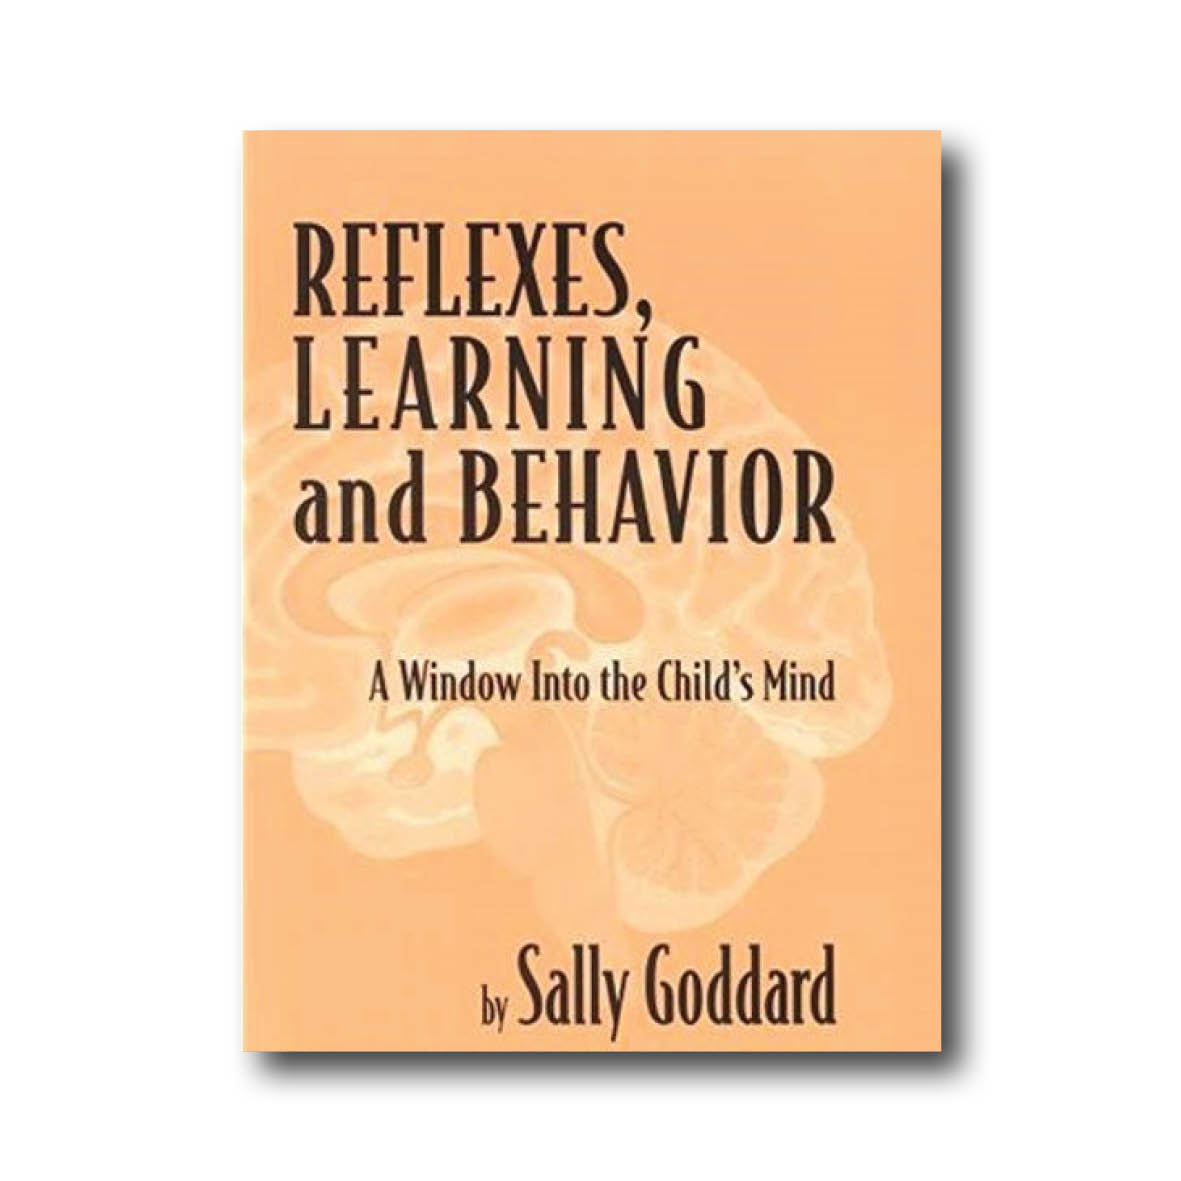 Goddard S 2002 Reflexes, learning and behaviour Oregon Fern Ridge Press_